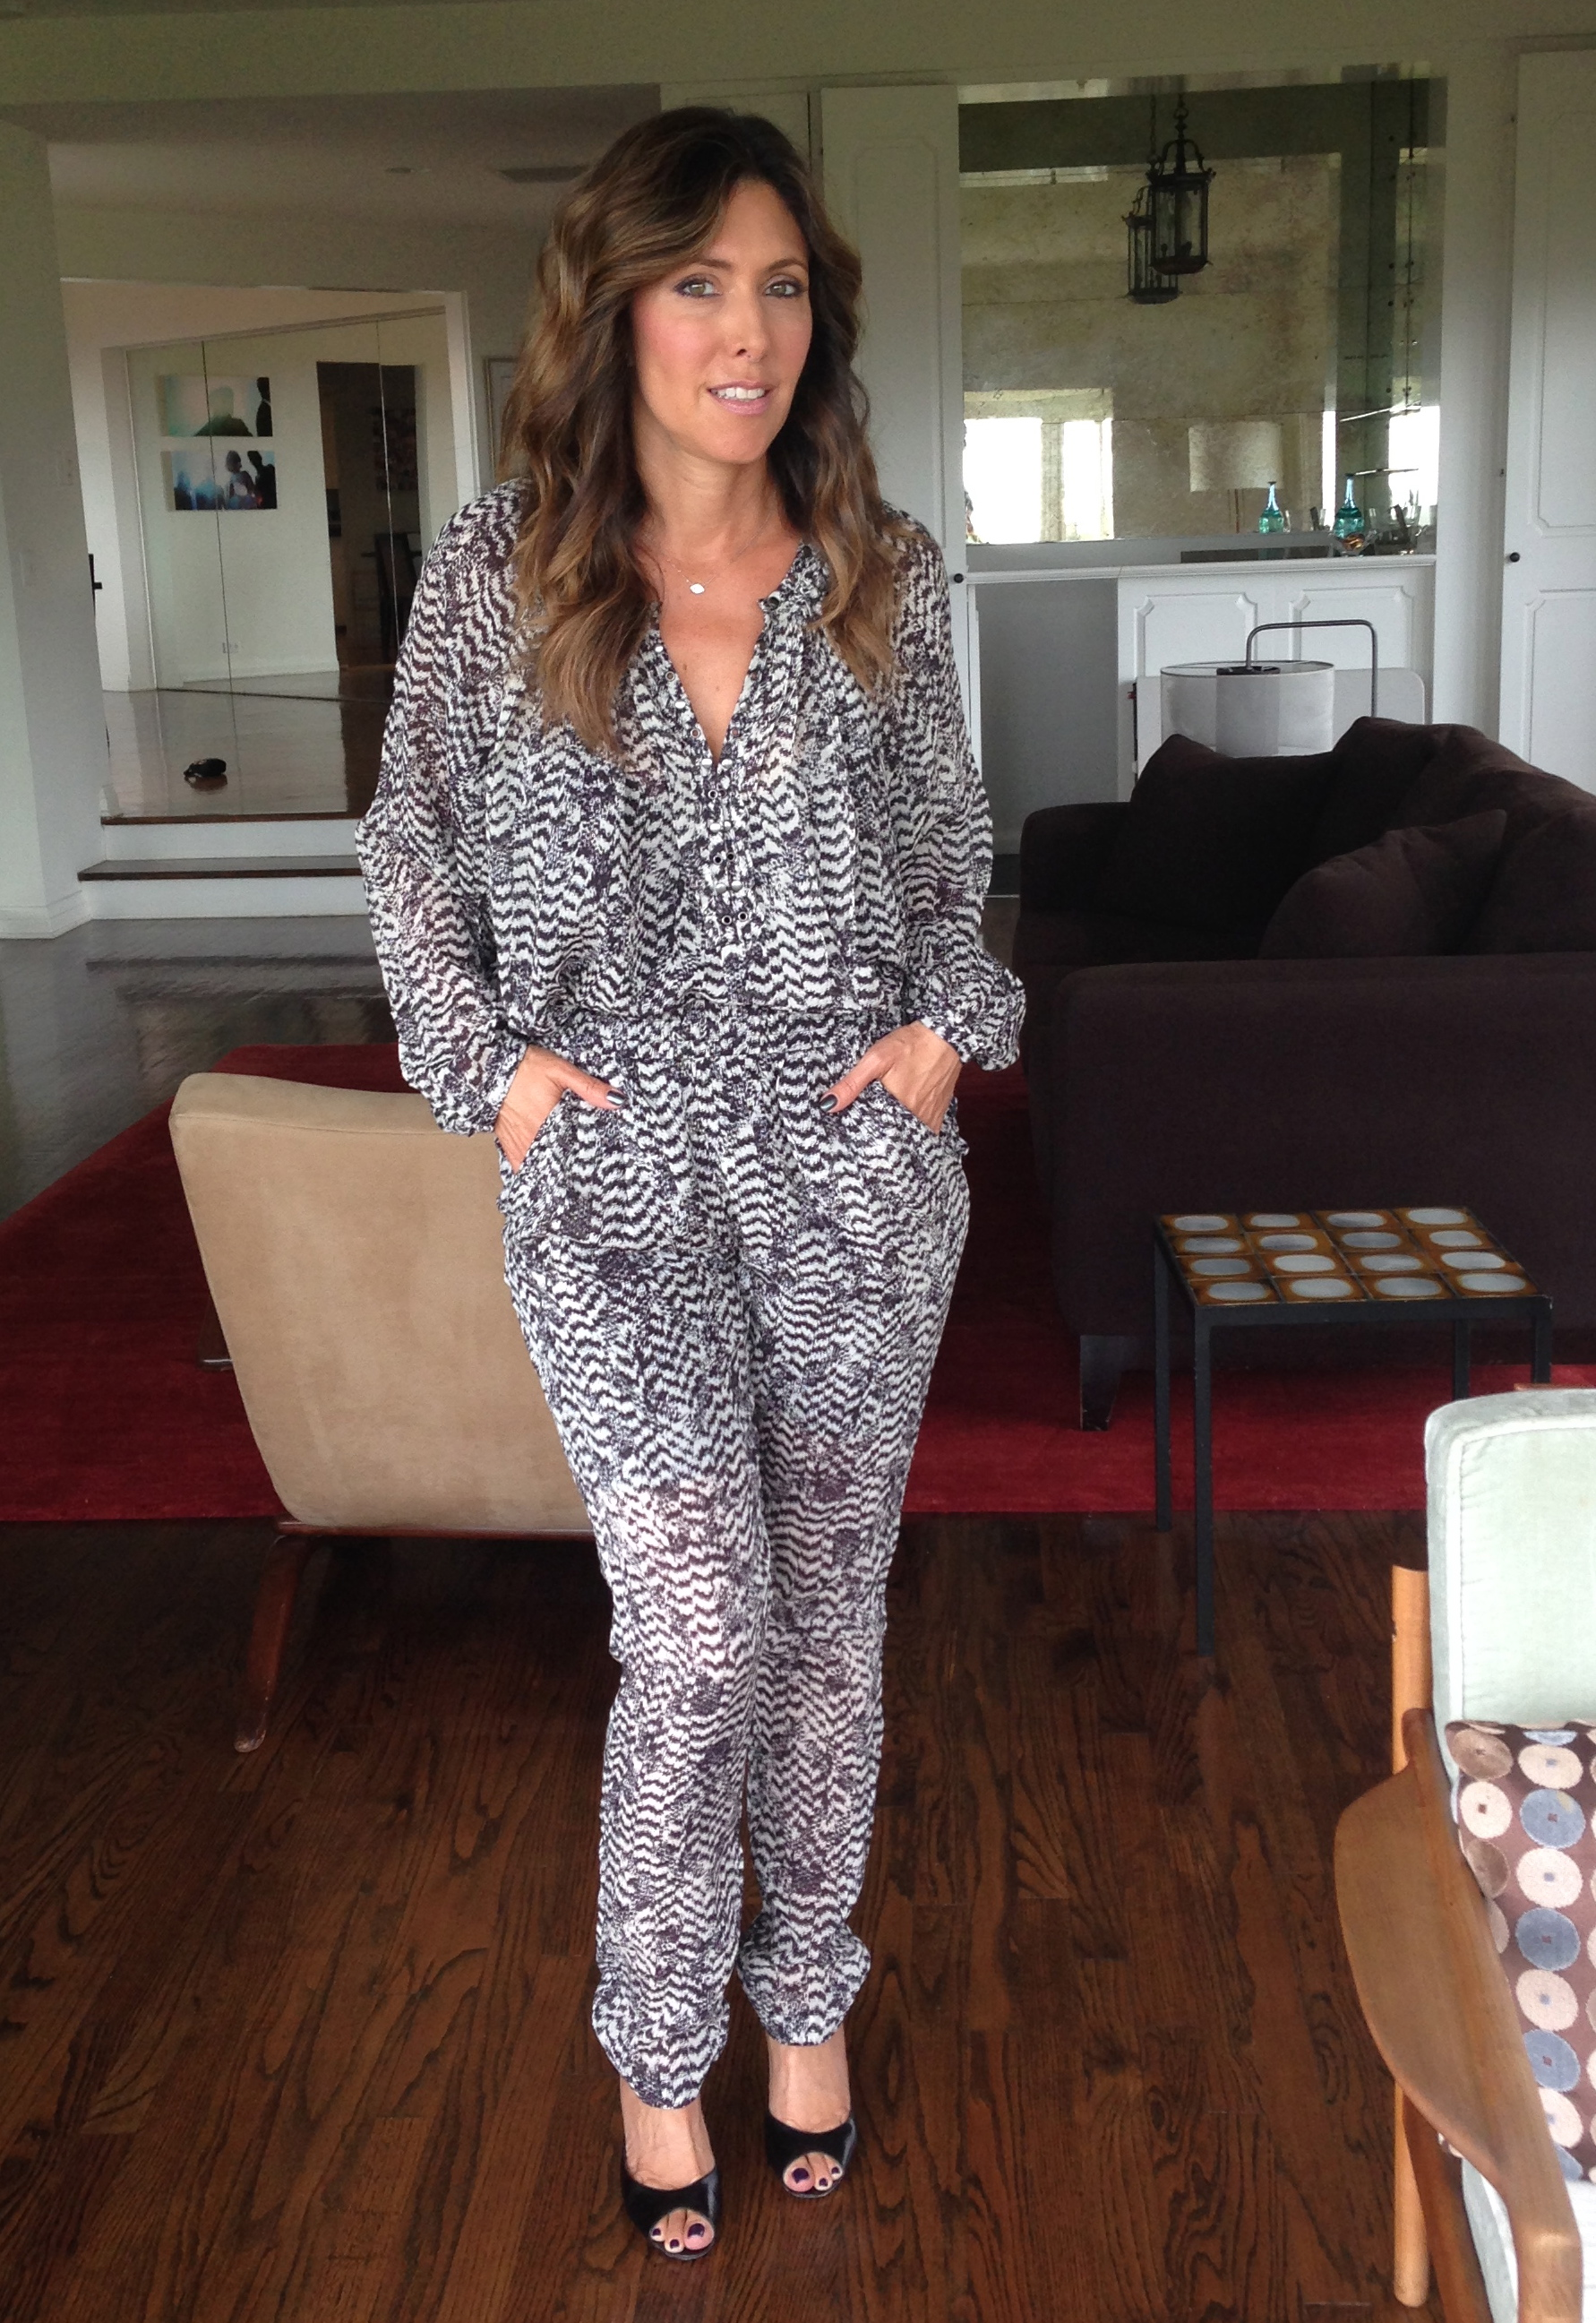 Isabel Marant patternedsilk top and pants, $99 each. Can be worn to look like a jumpsuit as shown here.